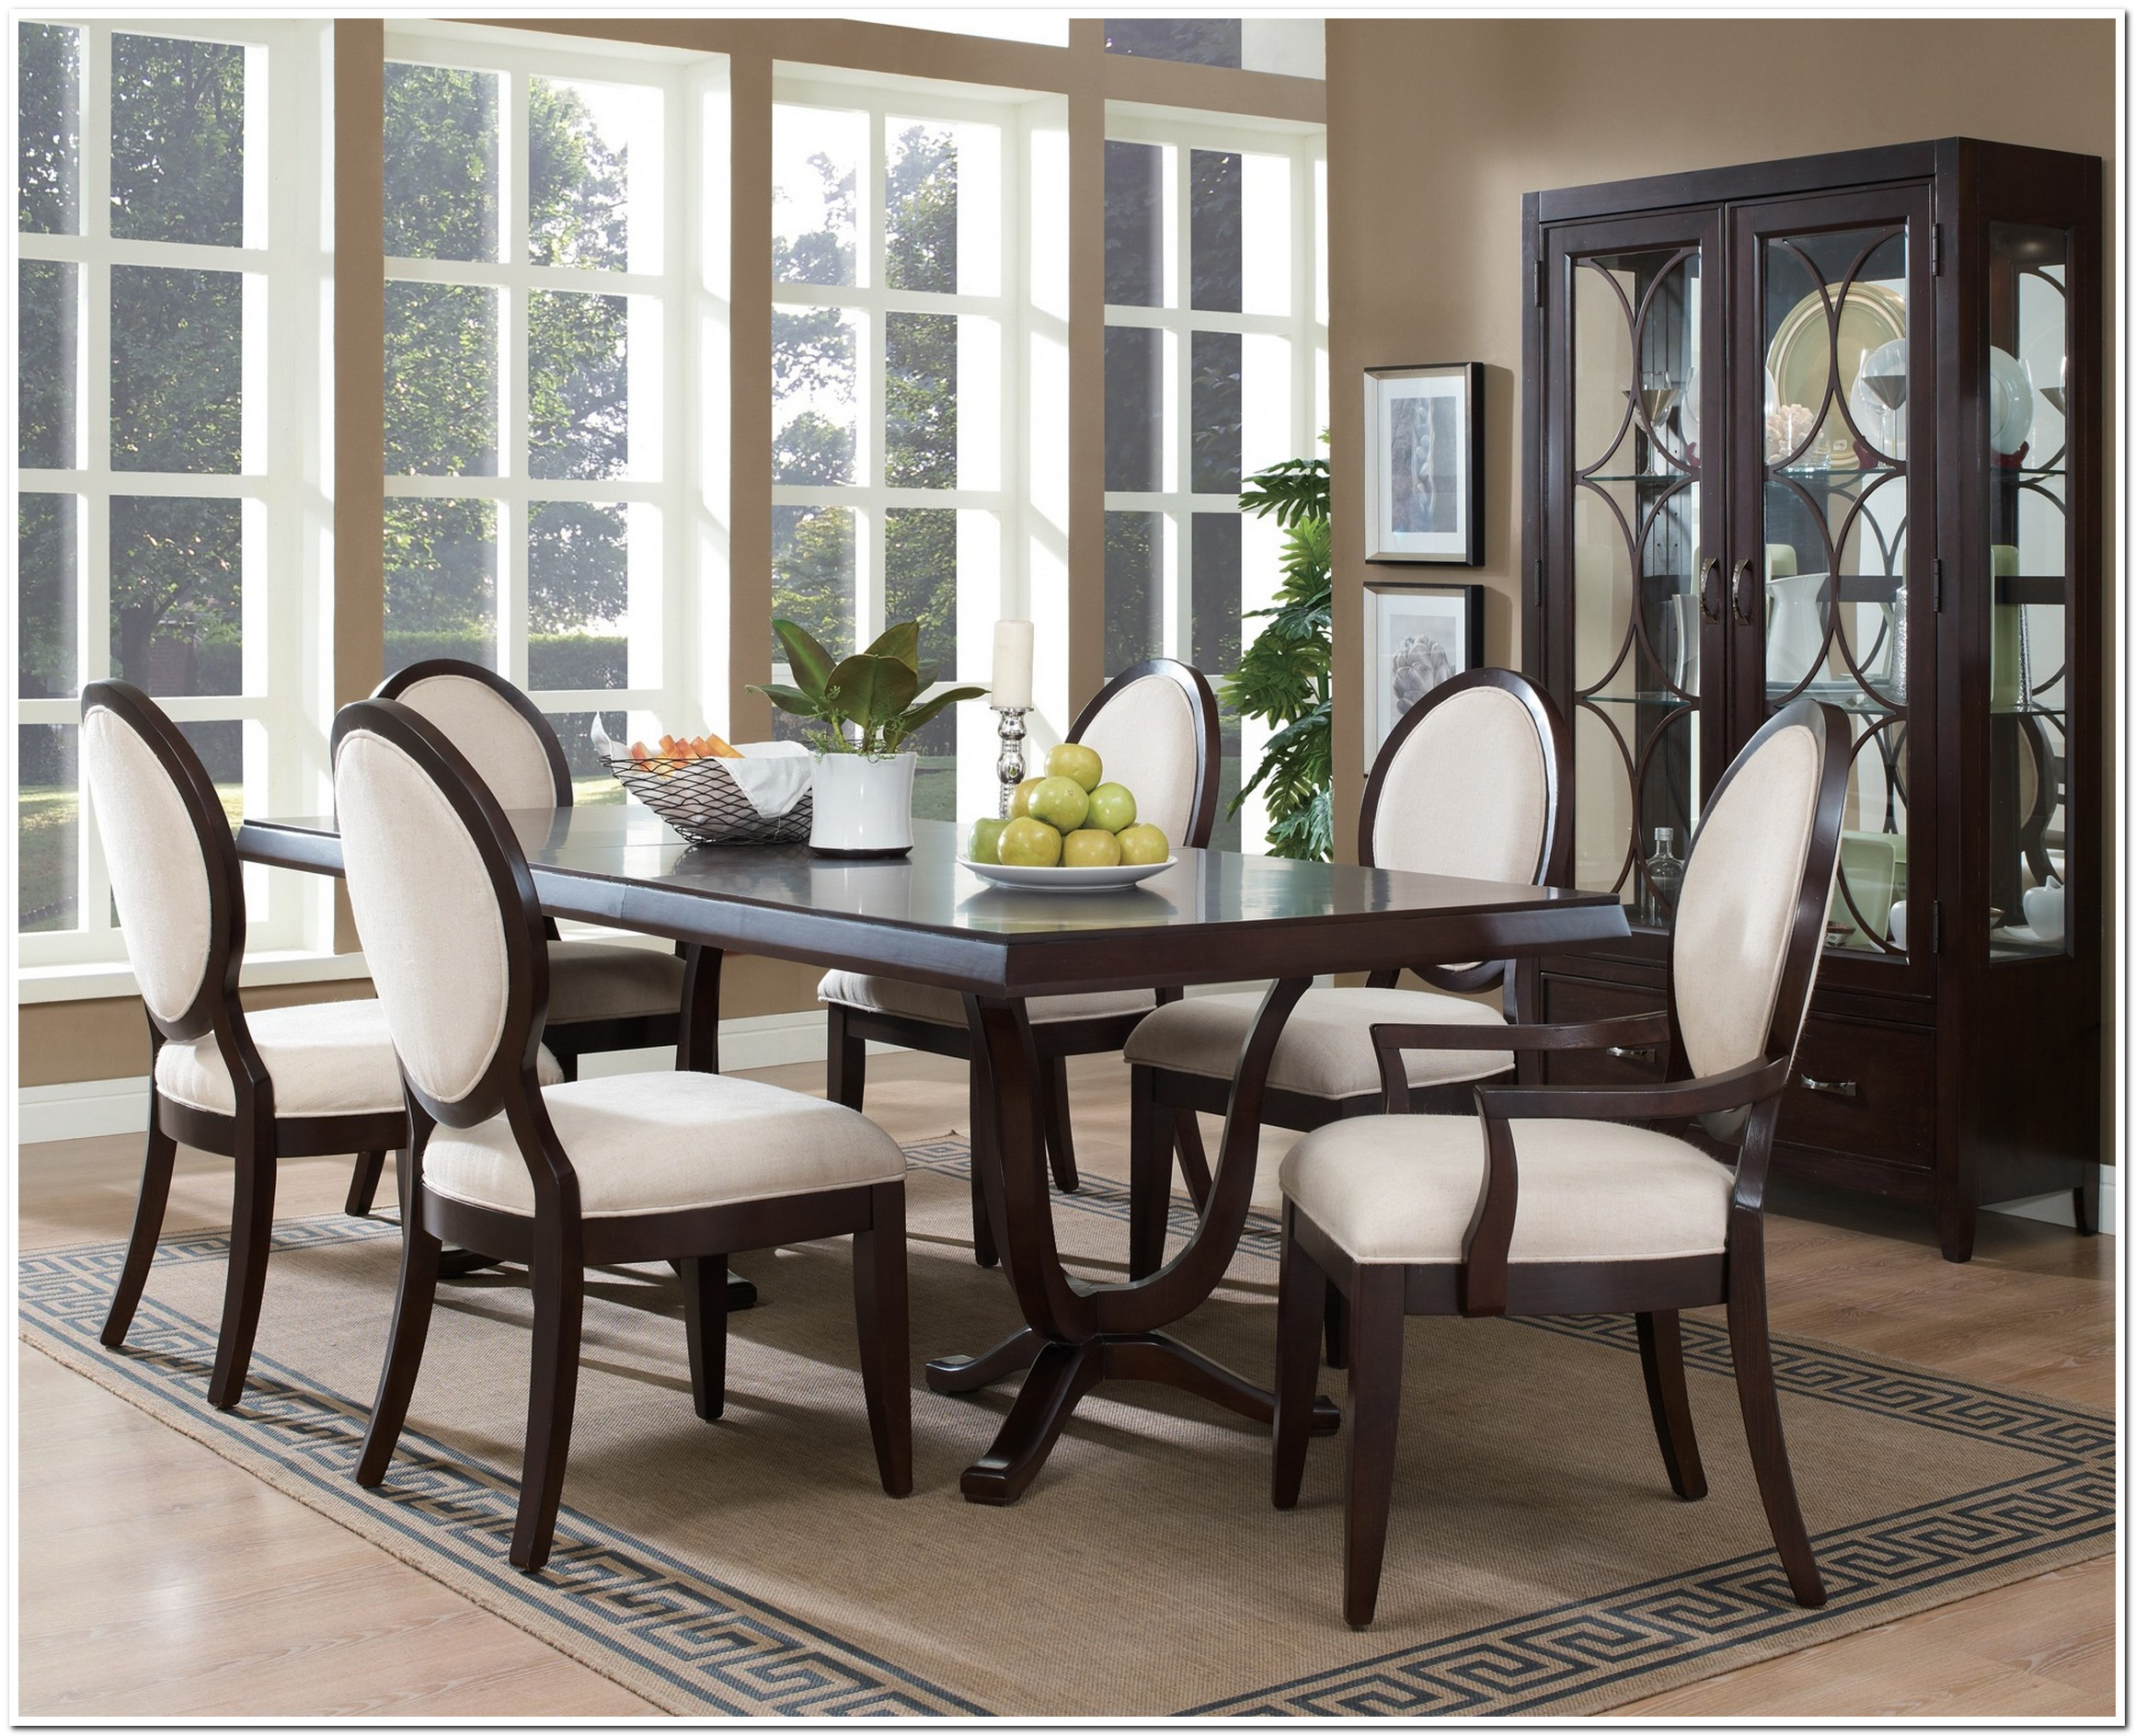 Know what dining room furniture sets you want to bring out for Dining room suites images